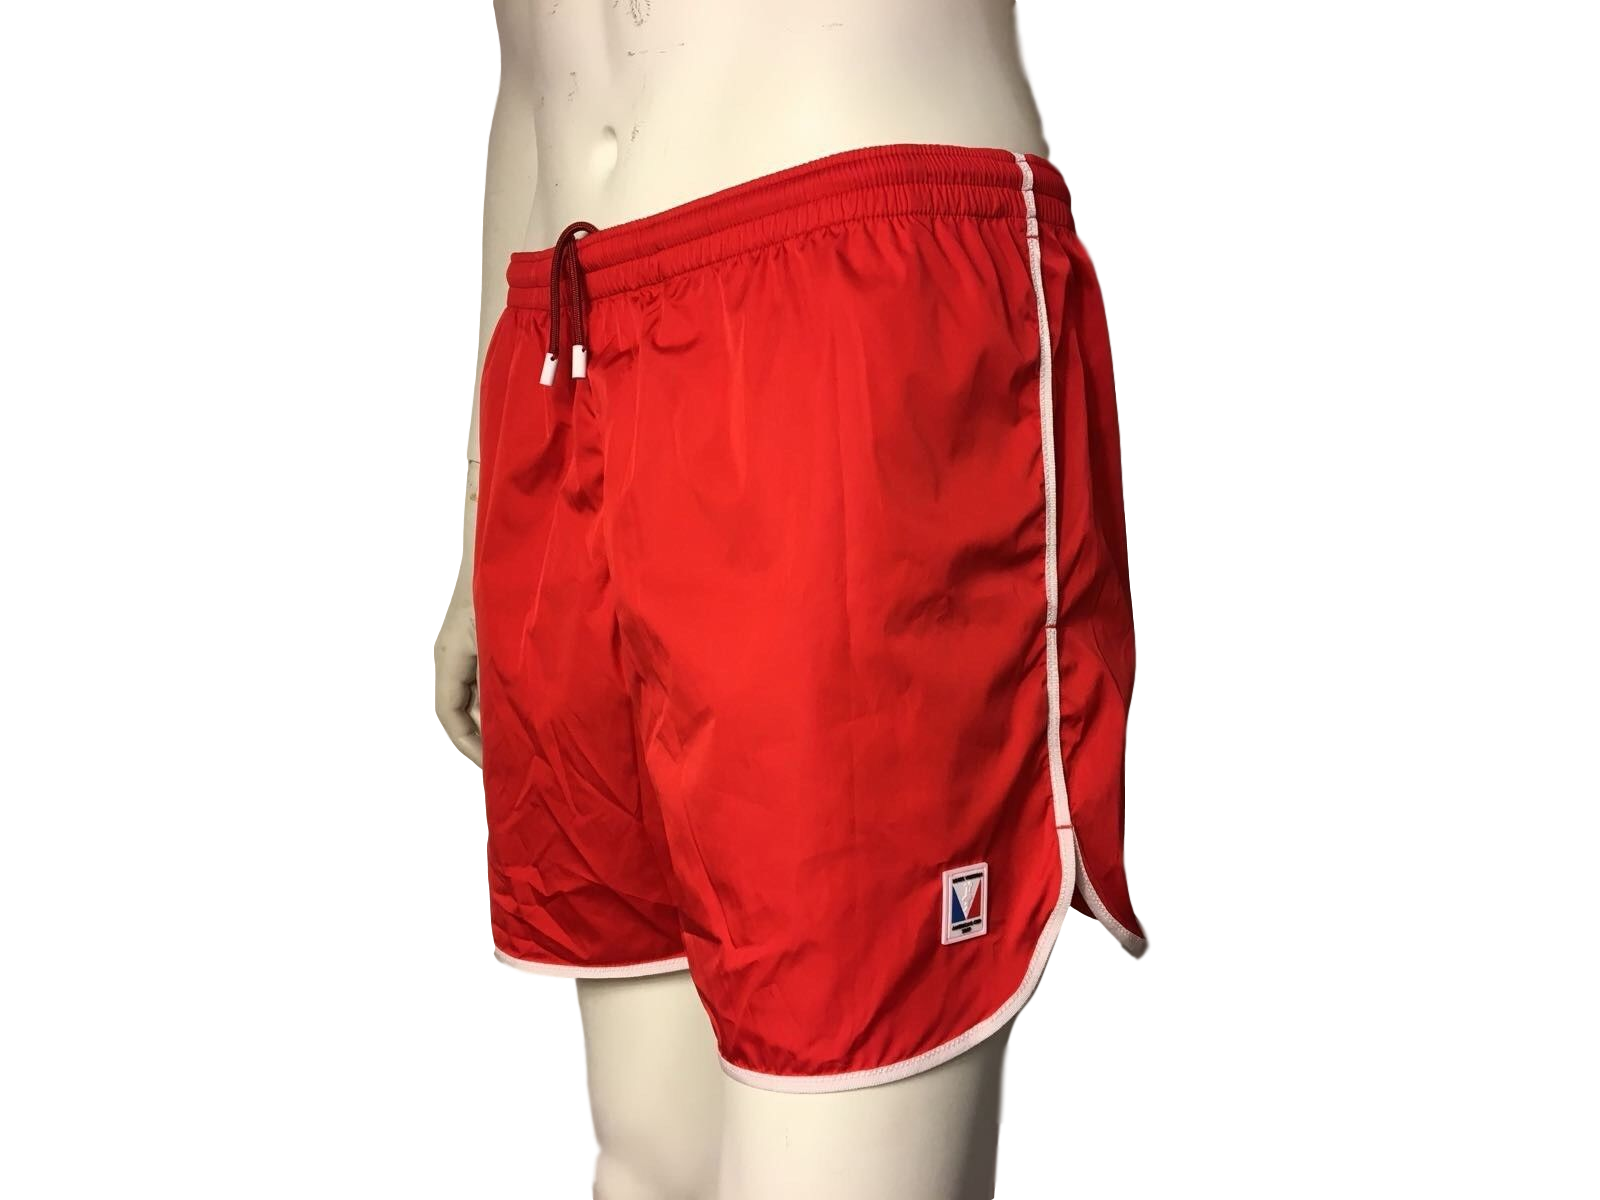 a6c1e773fe America's Cup Swim Shorts | Louis Vuitton Swim Shorts | Swim shorts ...